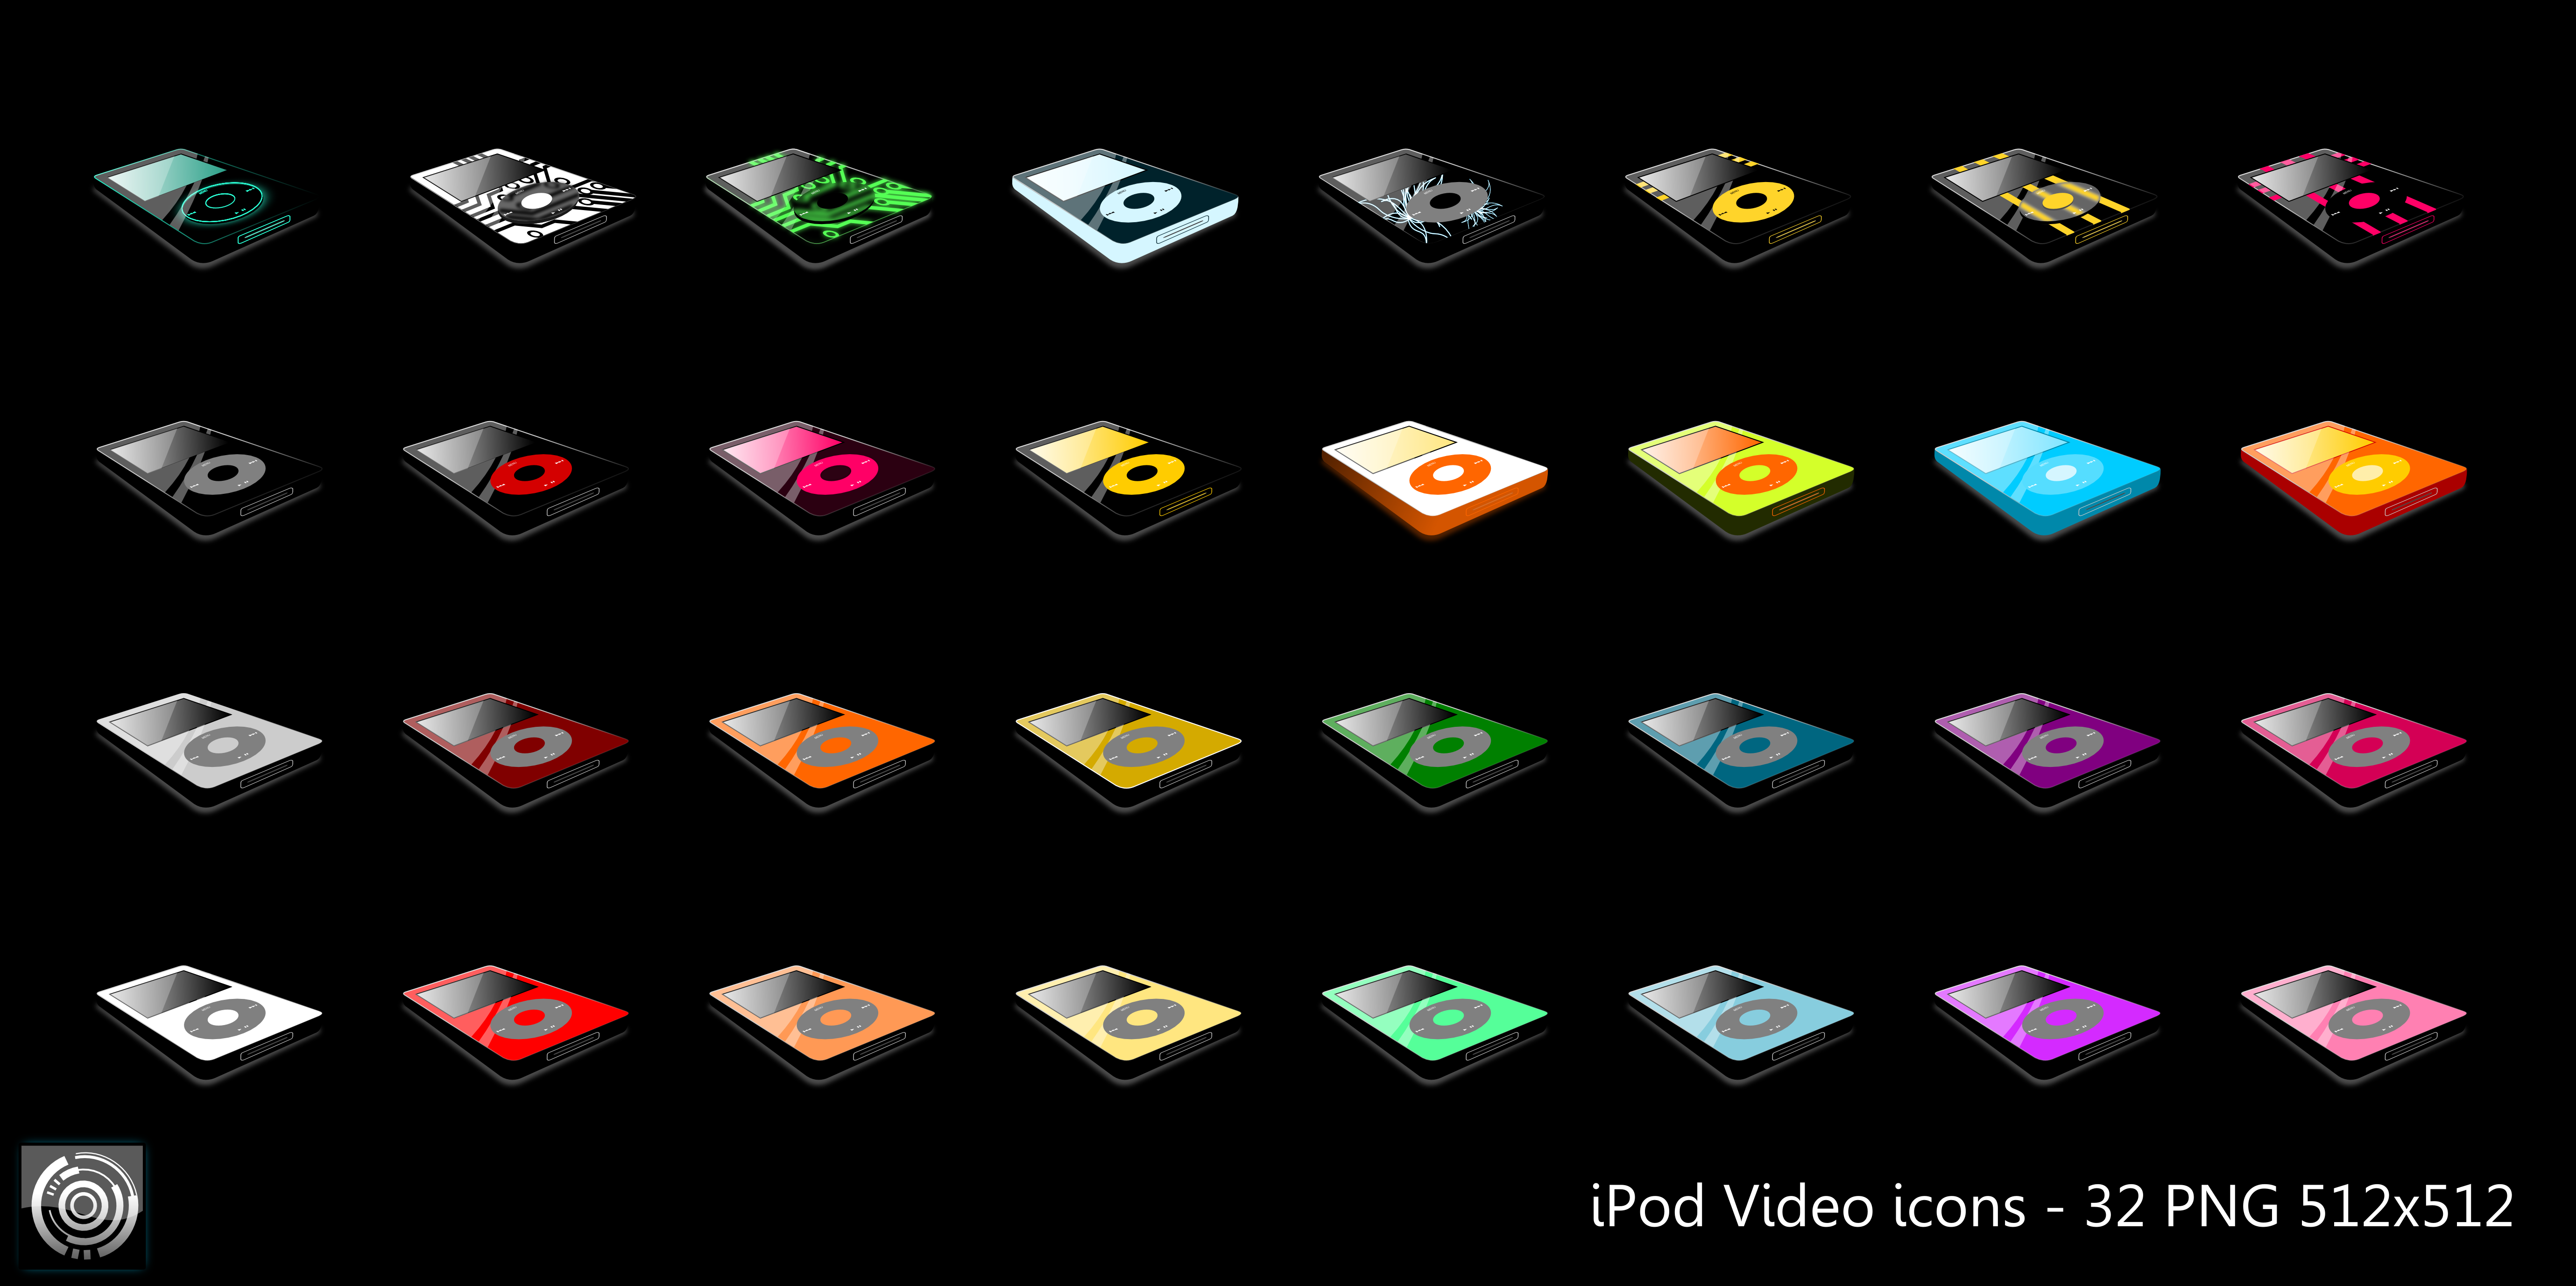 ipod,video,preview